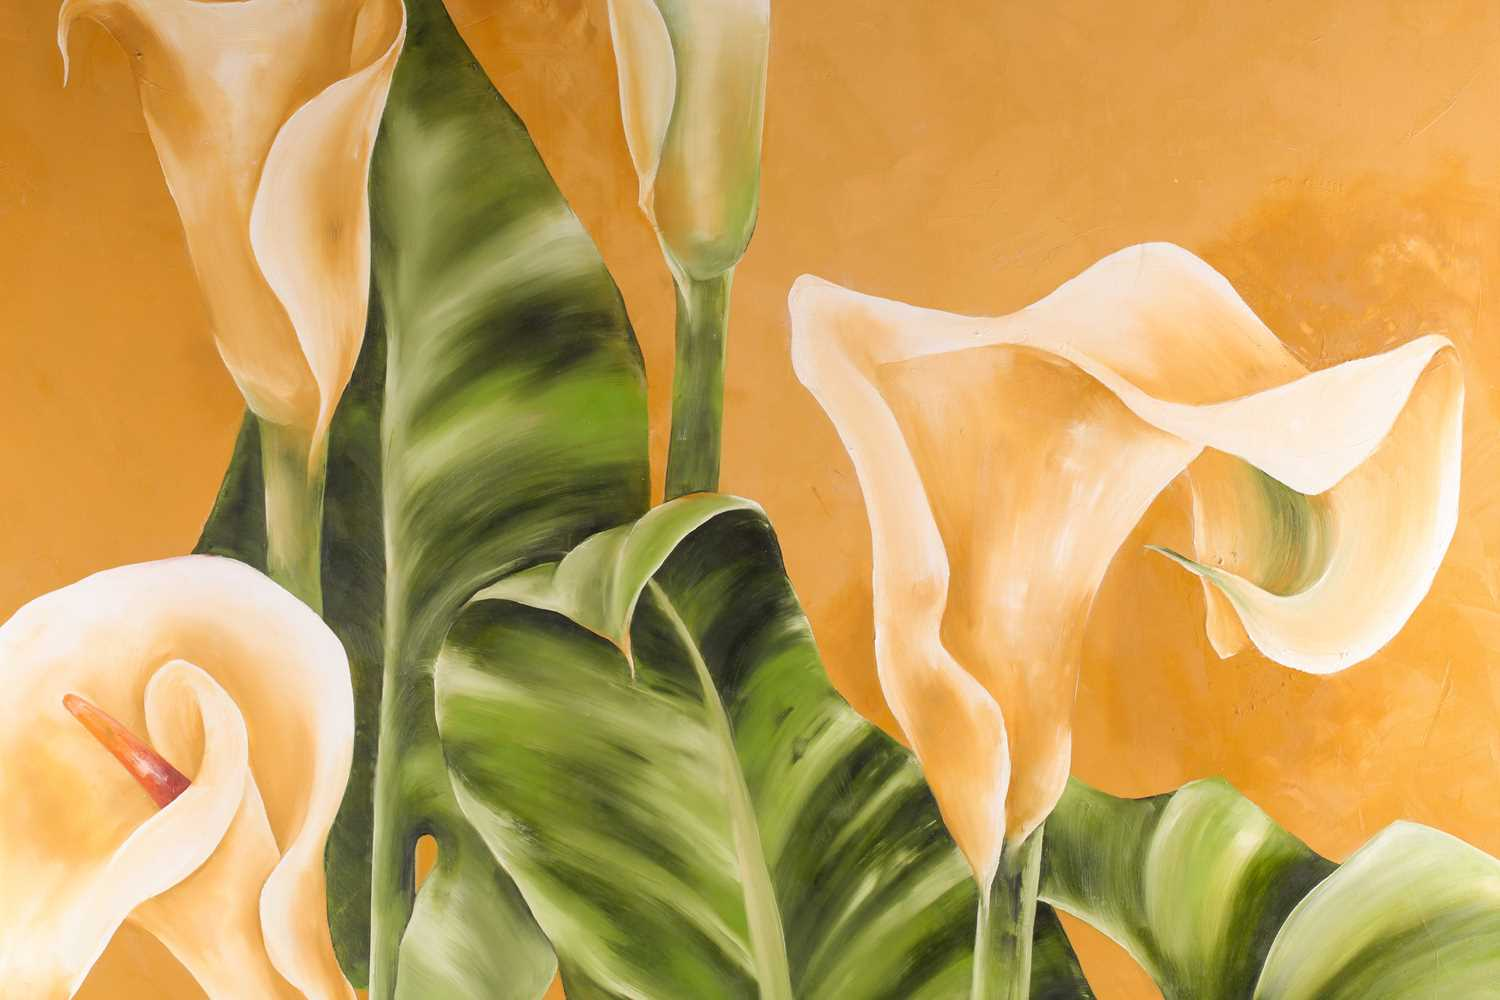 Lize-Maria Van Der Merwe, Arum Lilies, oil on cancas, signed and dated 2001 lower right, 99 cm x 100 - Image 4 of 4